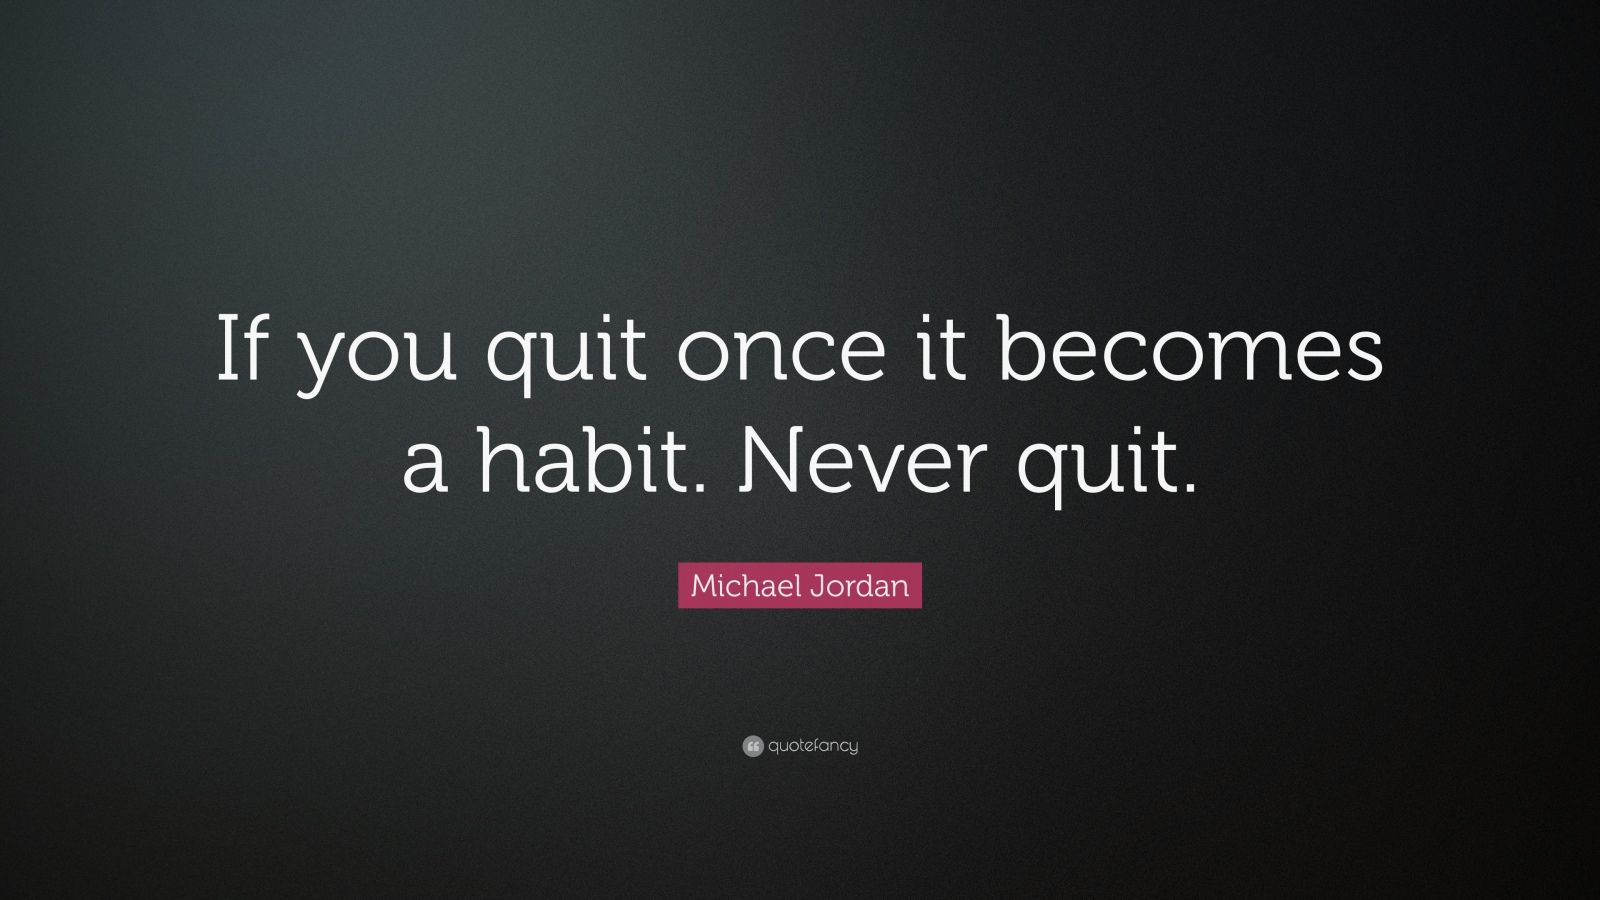 Goal Wallpapers Quotes To Stay Fit Michael Jordan Quote If You Quit Once It Becomes A Habit